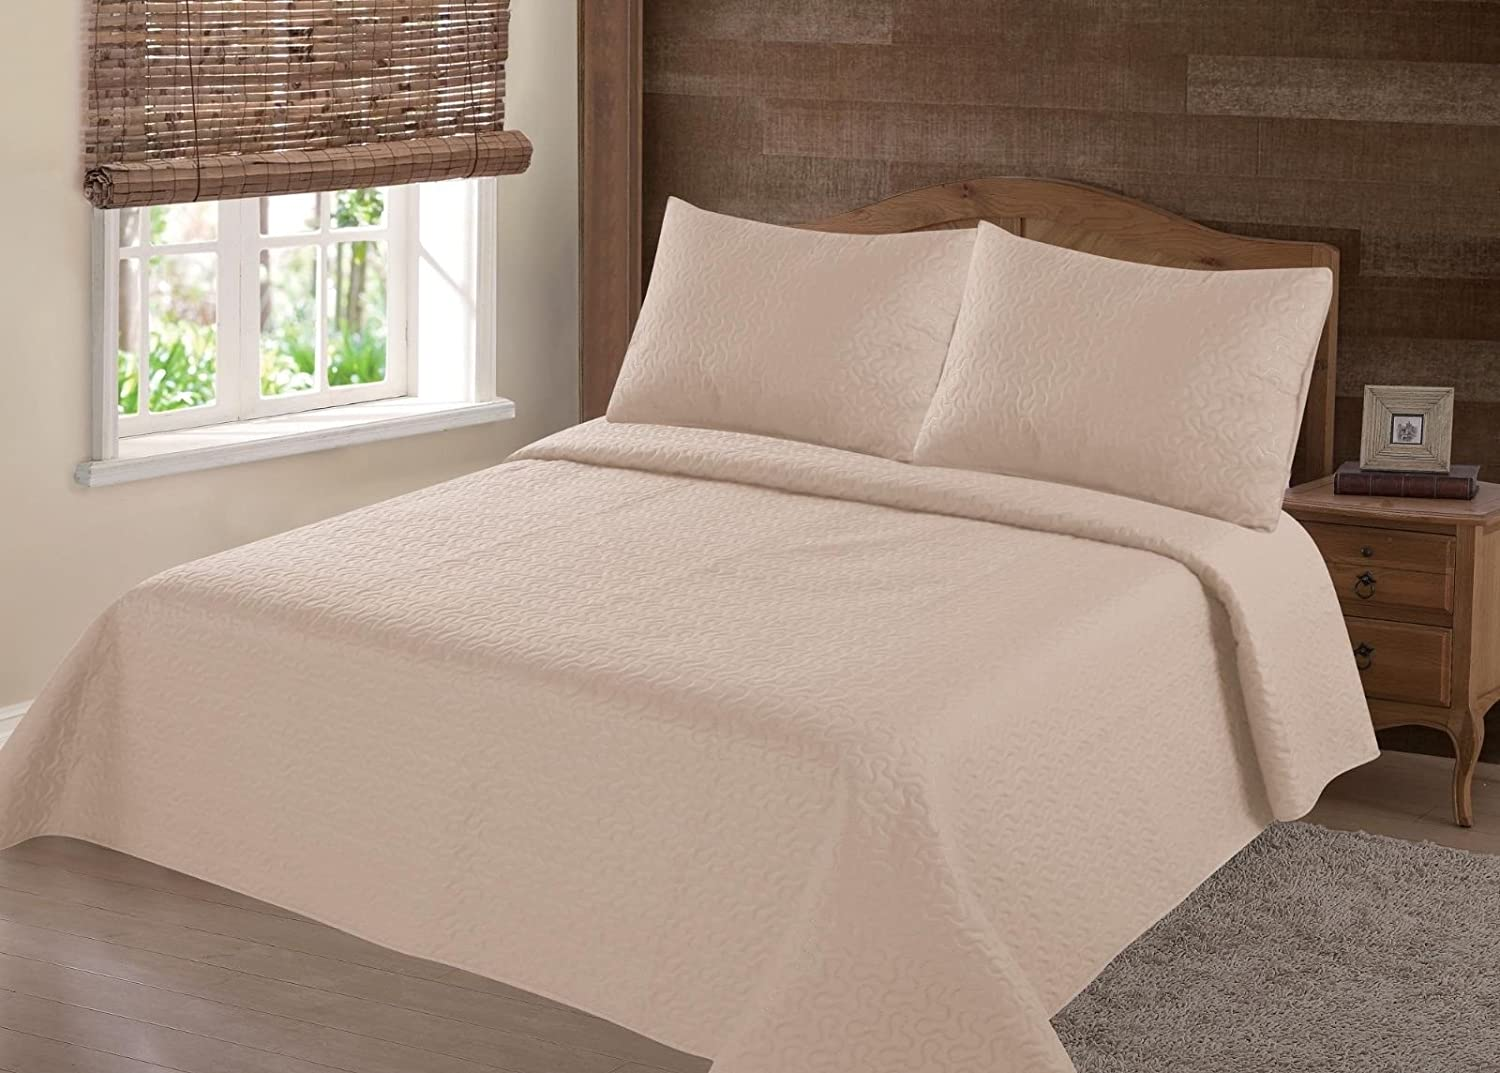 GorgeousHomeLinen (NENA) Taupe Tan Solid Hypoallergenic Quilt Bedspread Bed Bedding Coverlets Cover Set with Pillow Cases Size inc: Twin (2pc) Full Queen King (3pc) (Queen)